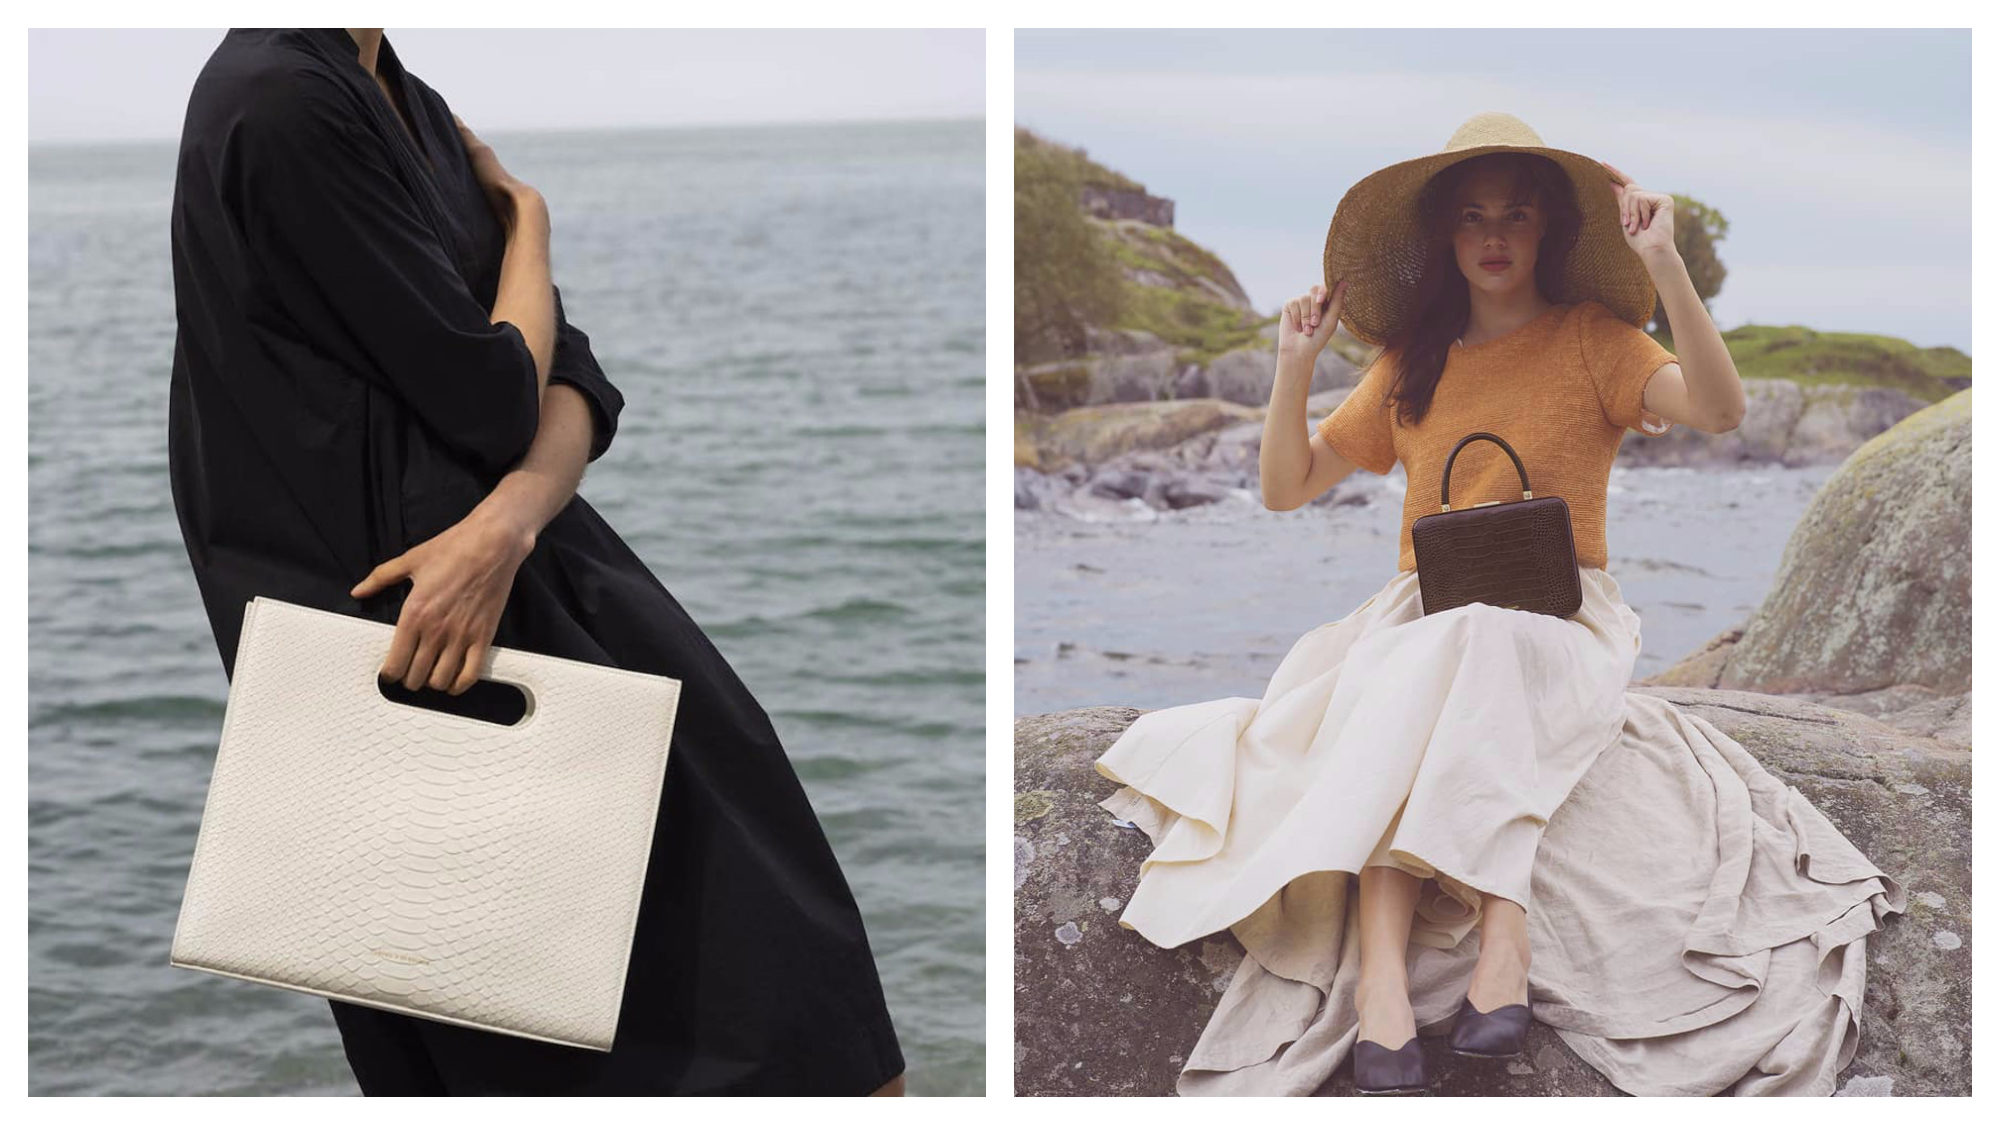 White embossed leather bag held by a model dressed in a black kaftan (left) and a brown handbag sat on a model's knee (right), both by Tammy and Benjamin.